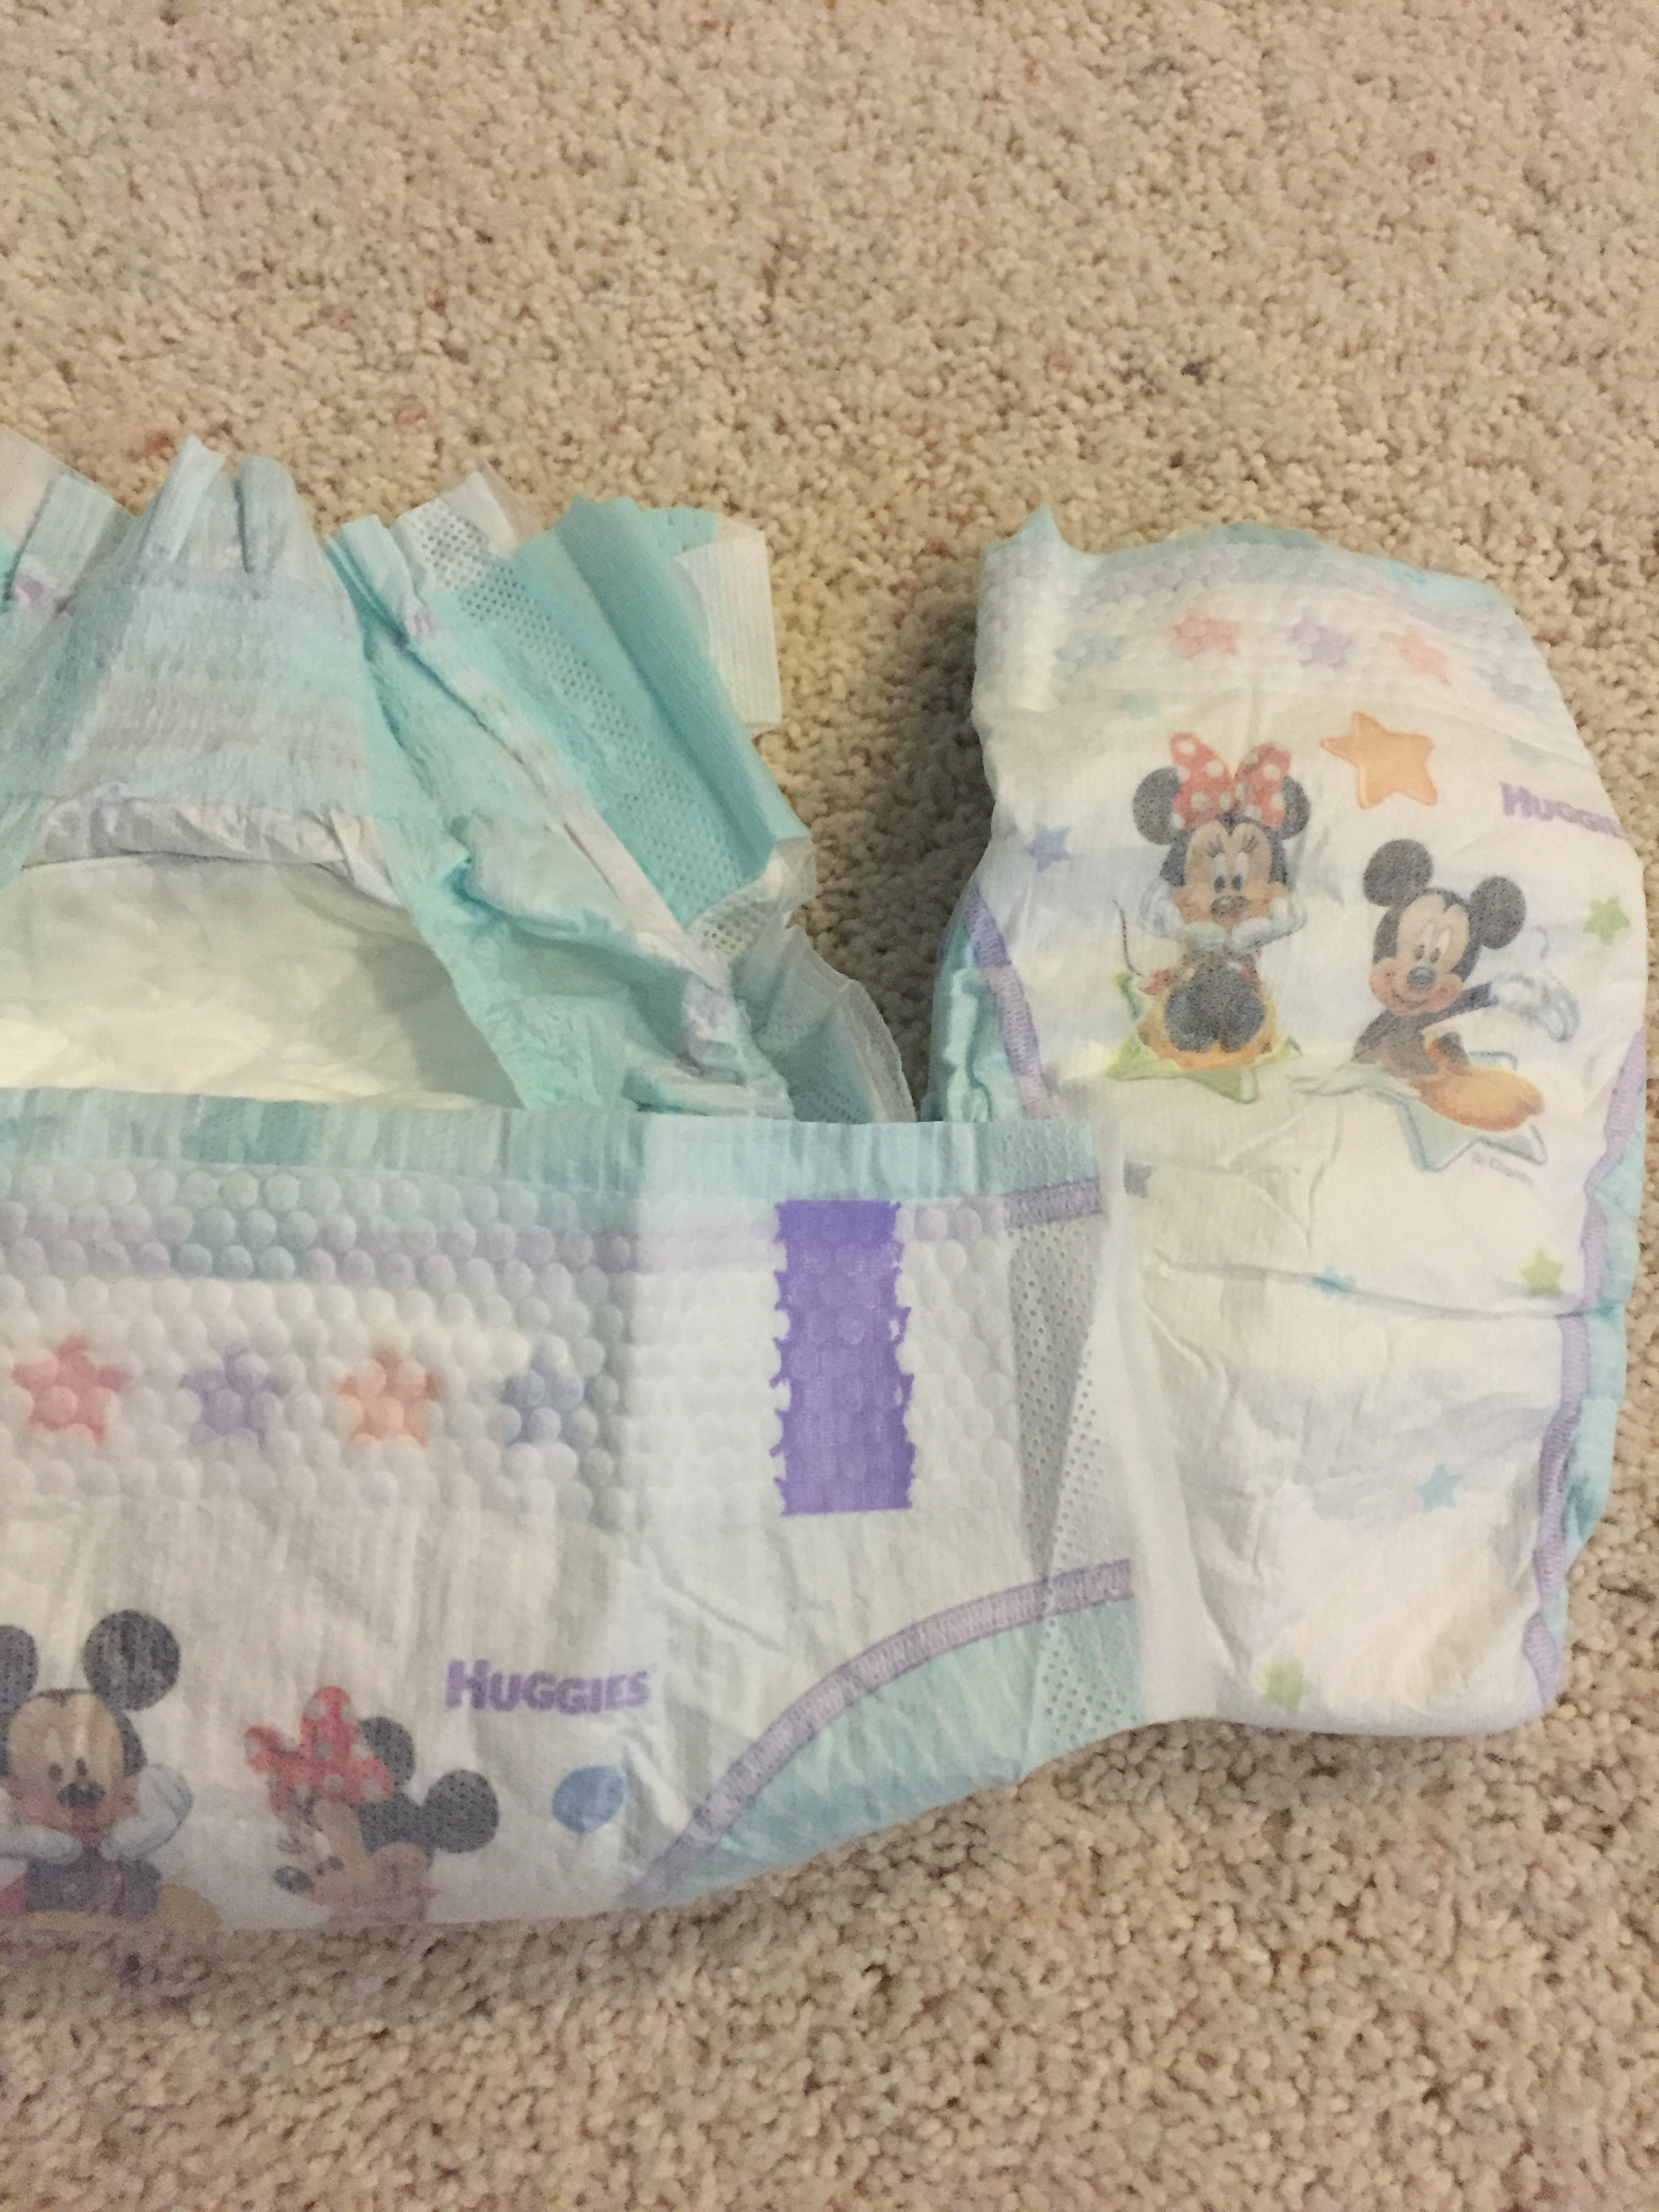 Costco Diapers Are The Same As Huggies Little Movers